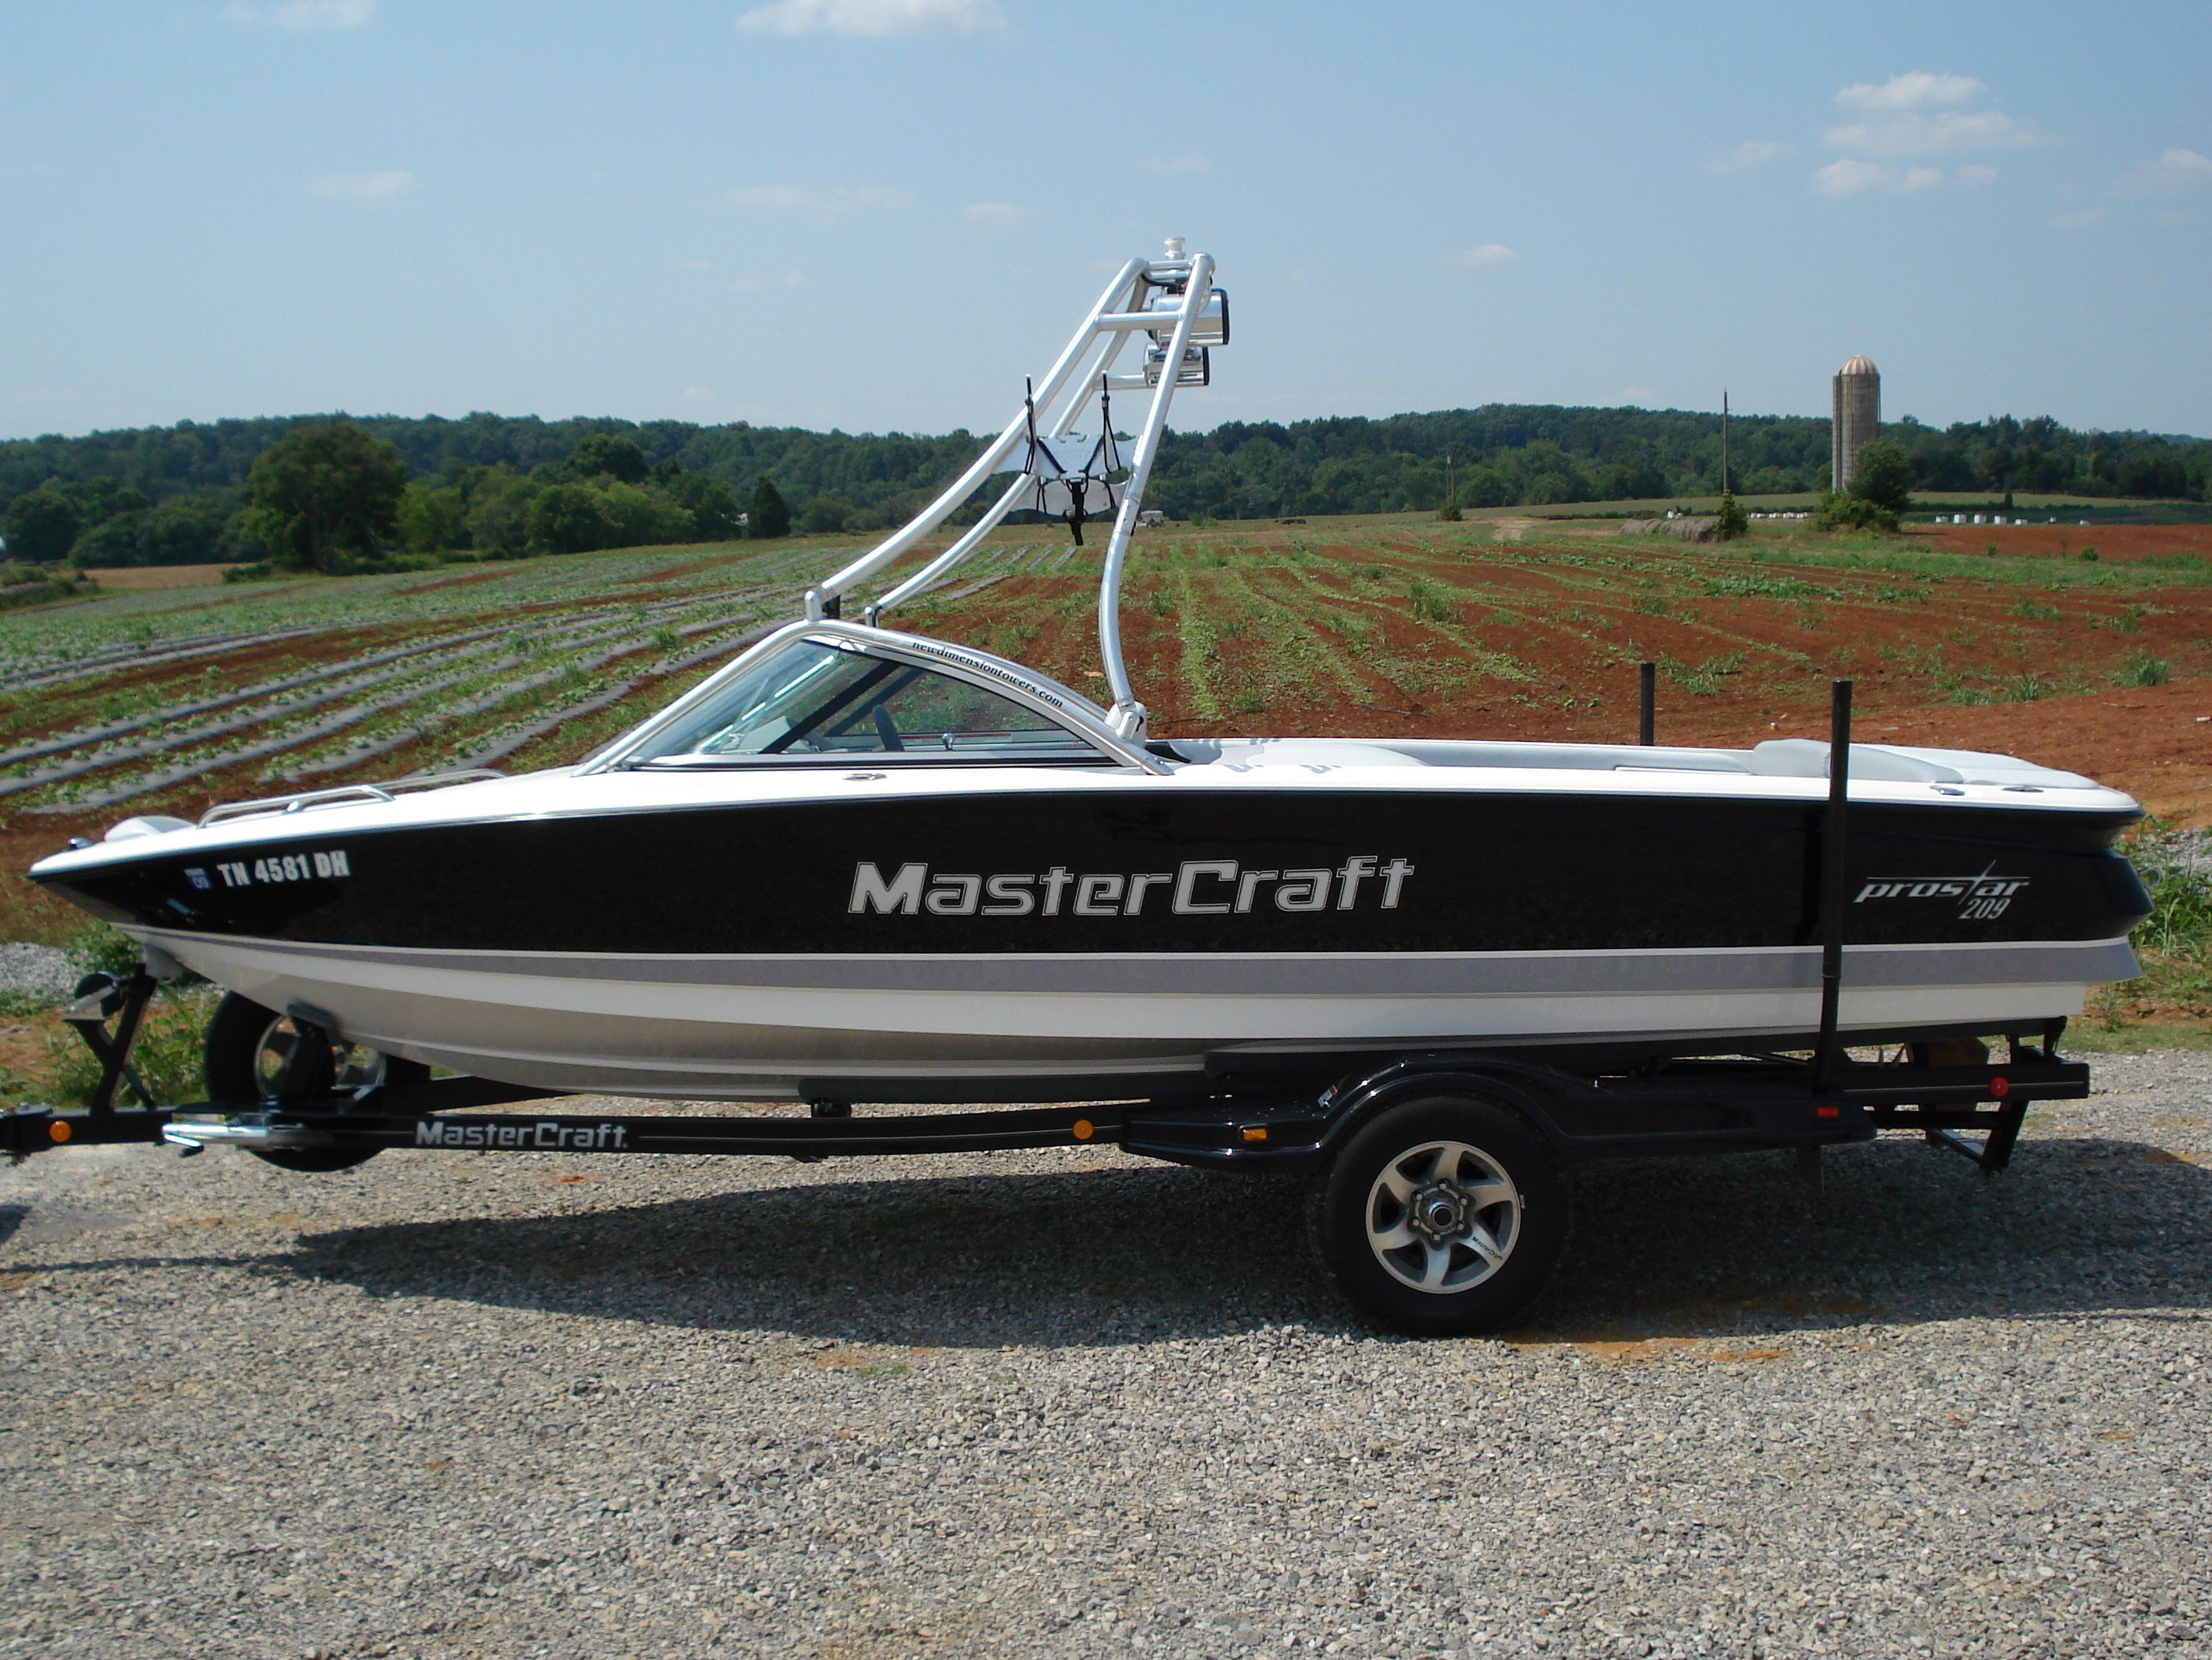 main view of 01 - 06 mastercraft prostar 209 wakeboard boat with new dimension wakeboard tower